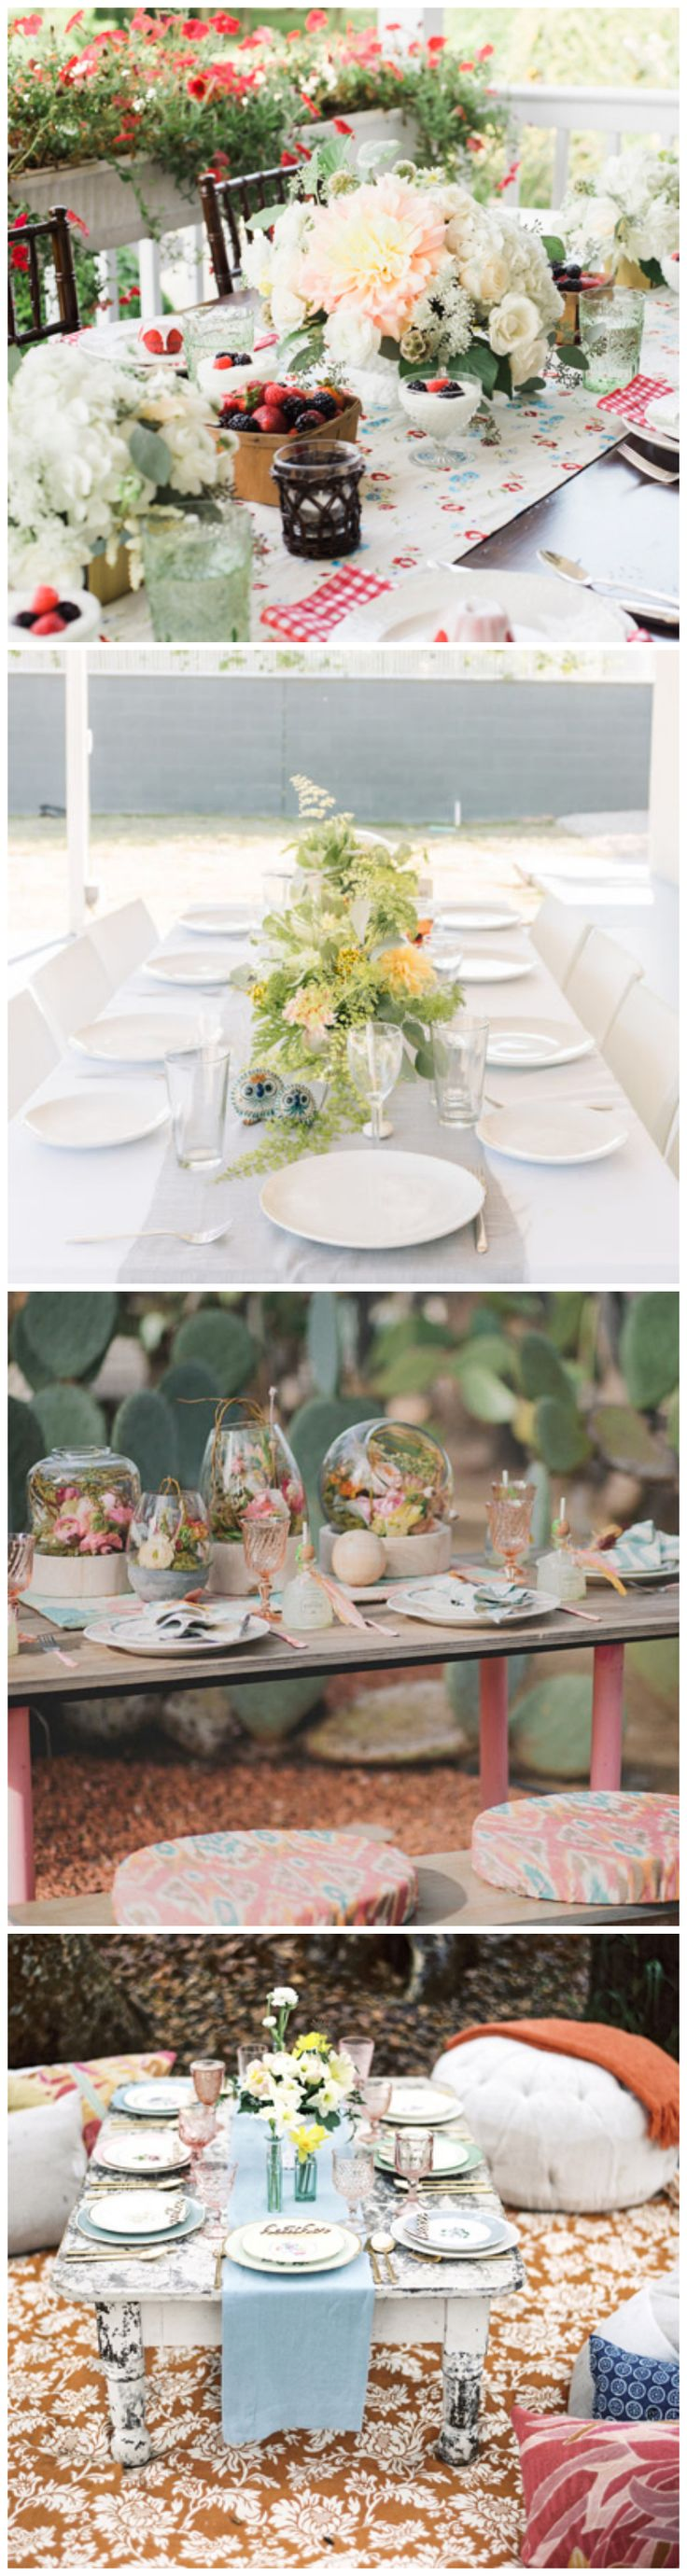 14 Tablescape Ideas for a Stunning Bridal Shower. Girl ShowerTable SettingsTablescapesFor ... & 212 best Table Setting Ideas images on Pinterest | Desk layout ...